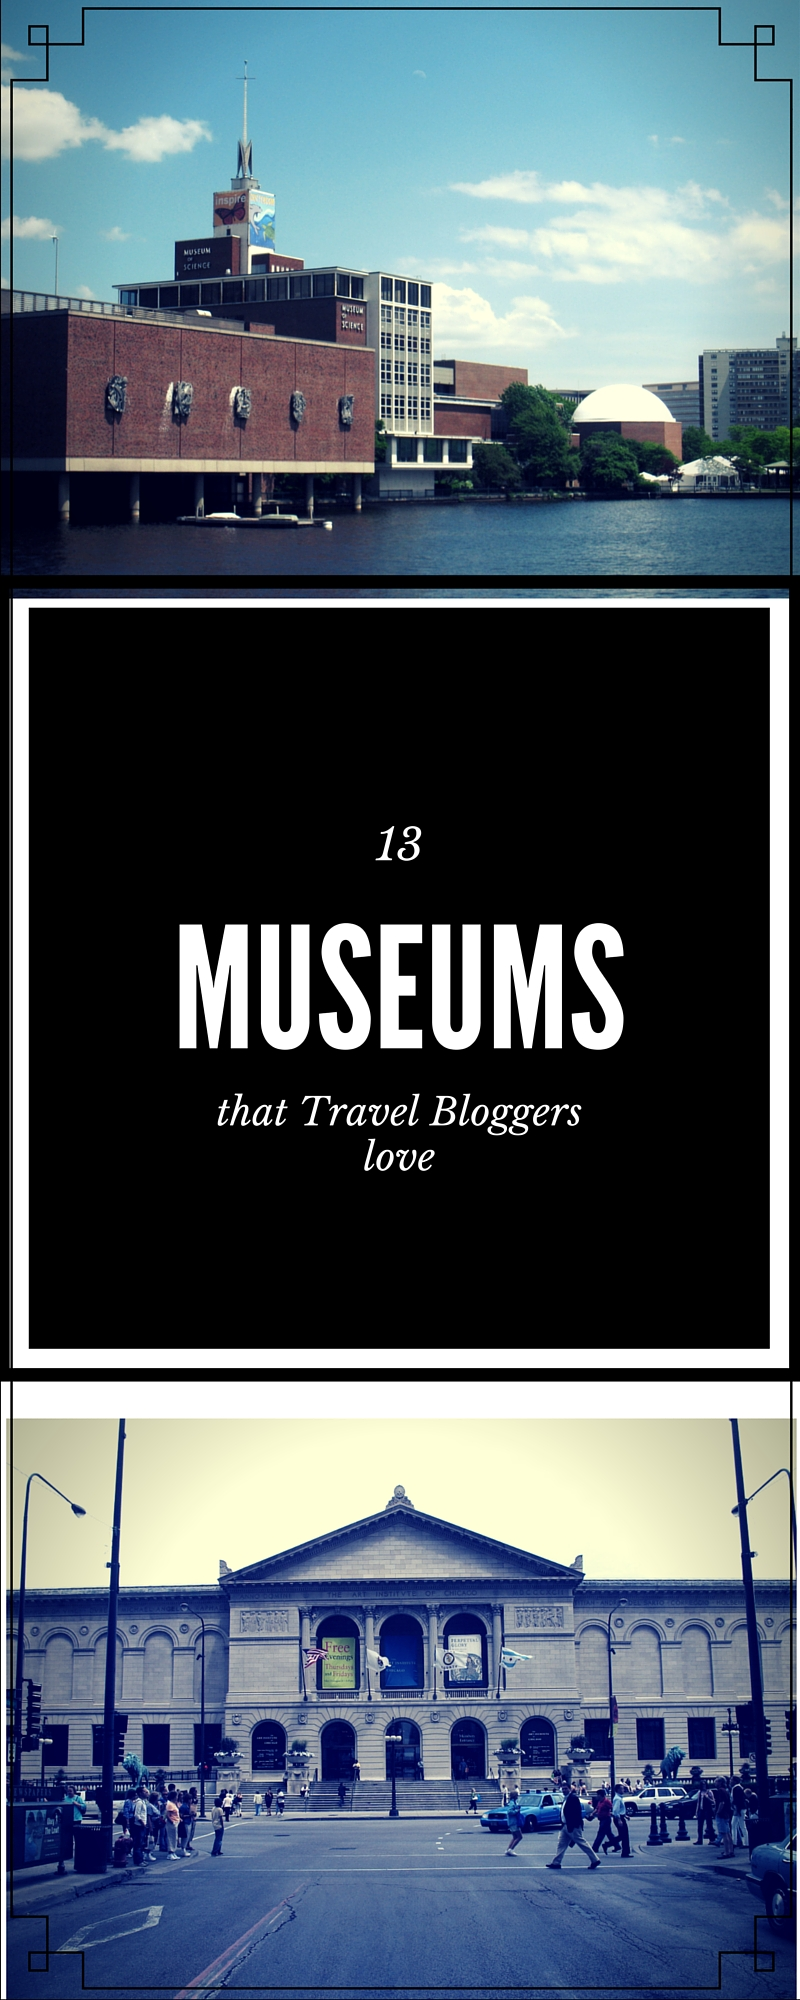 13 Museums that Travel Bloggers Love